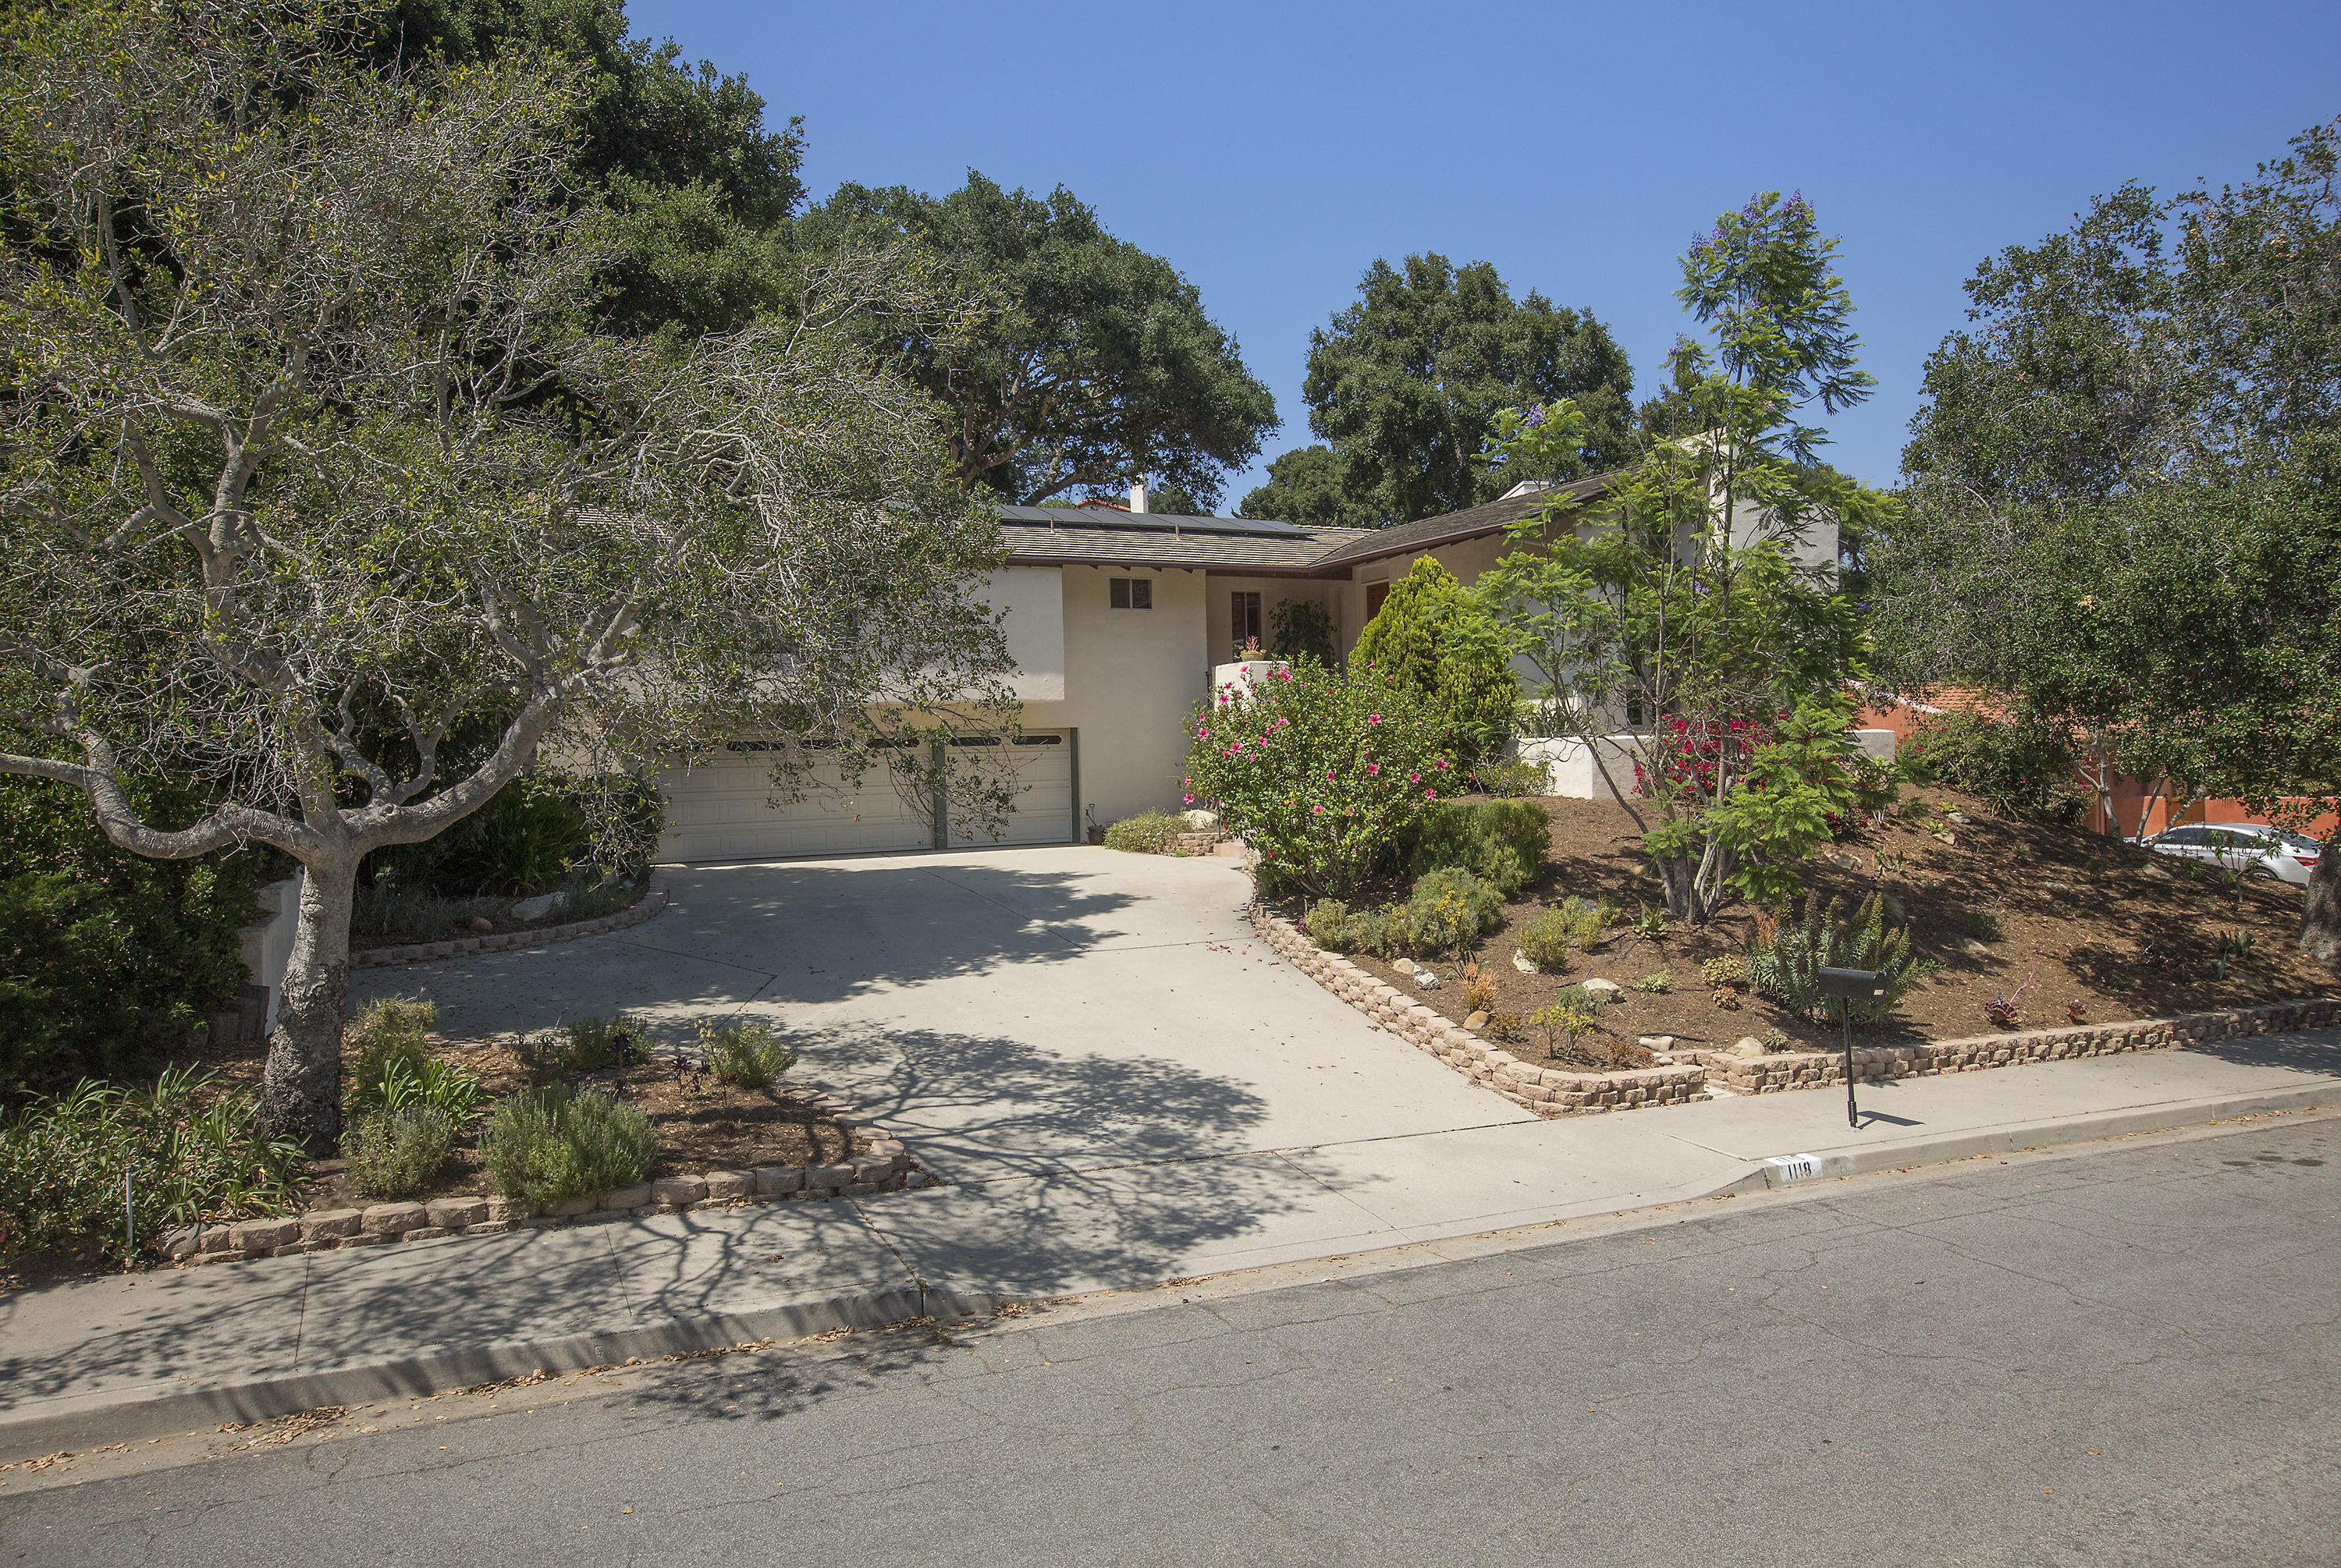 Property photo for 1118 Manitou Rd Santa Barbara, California 93101 - 16-2236